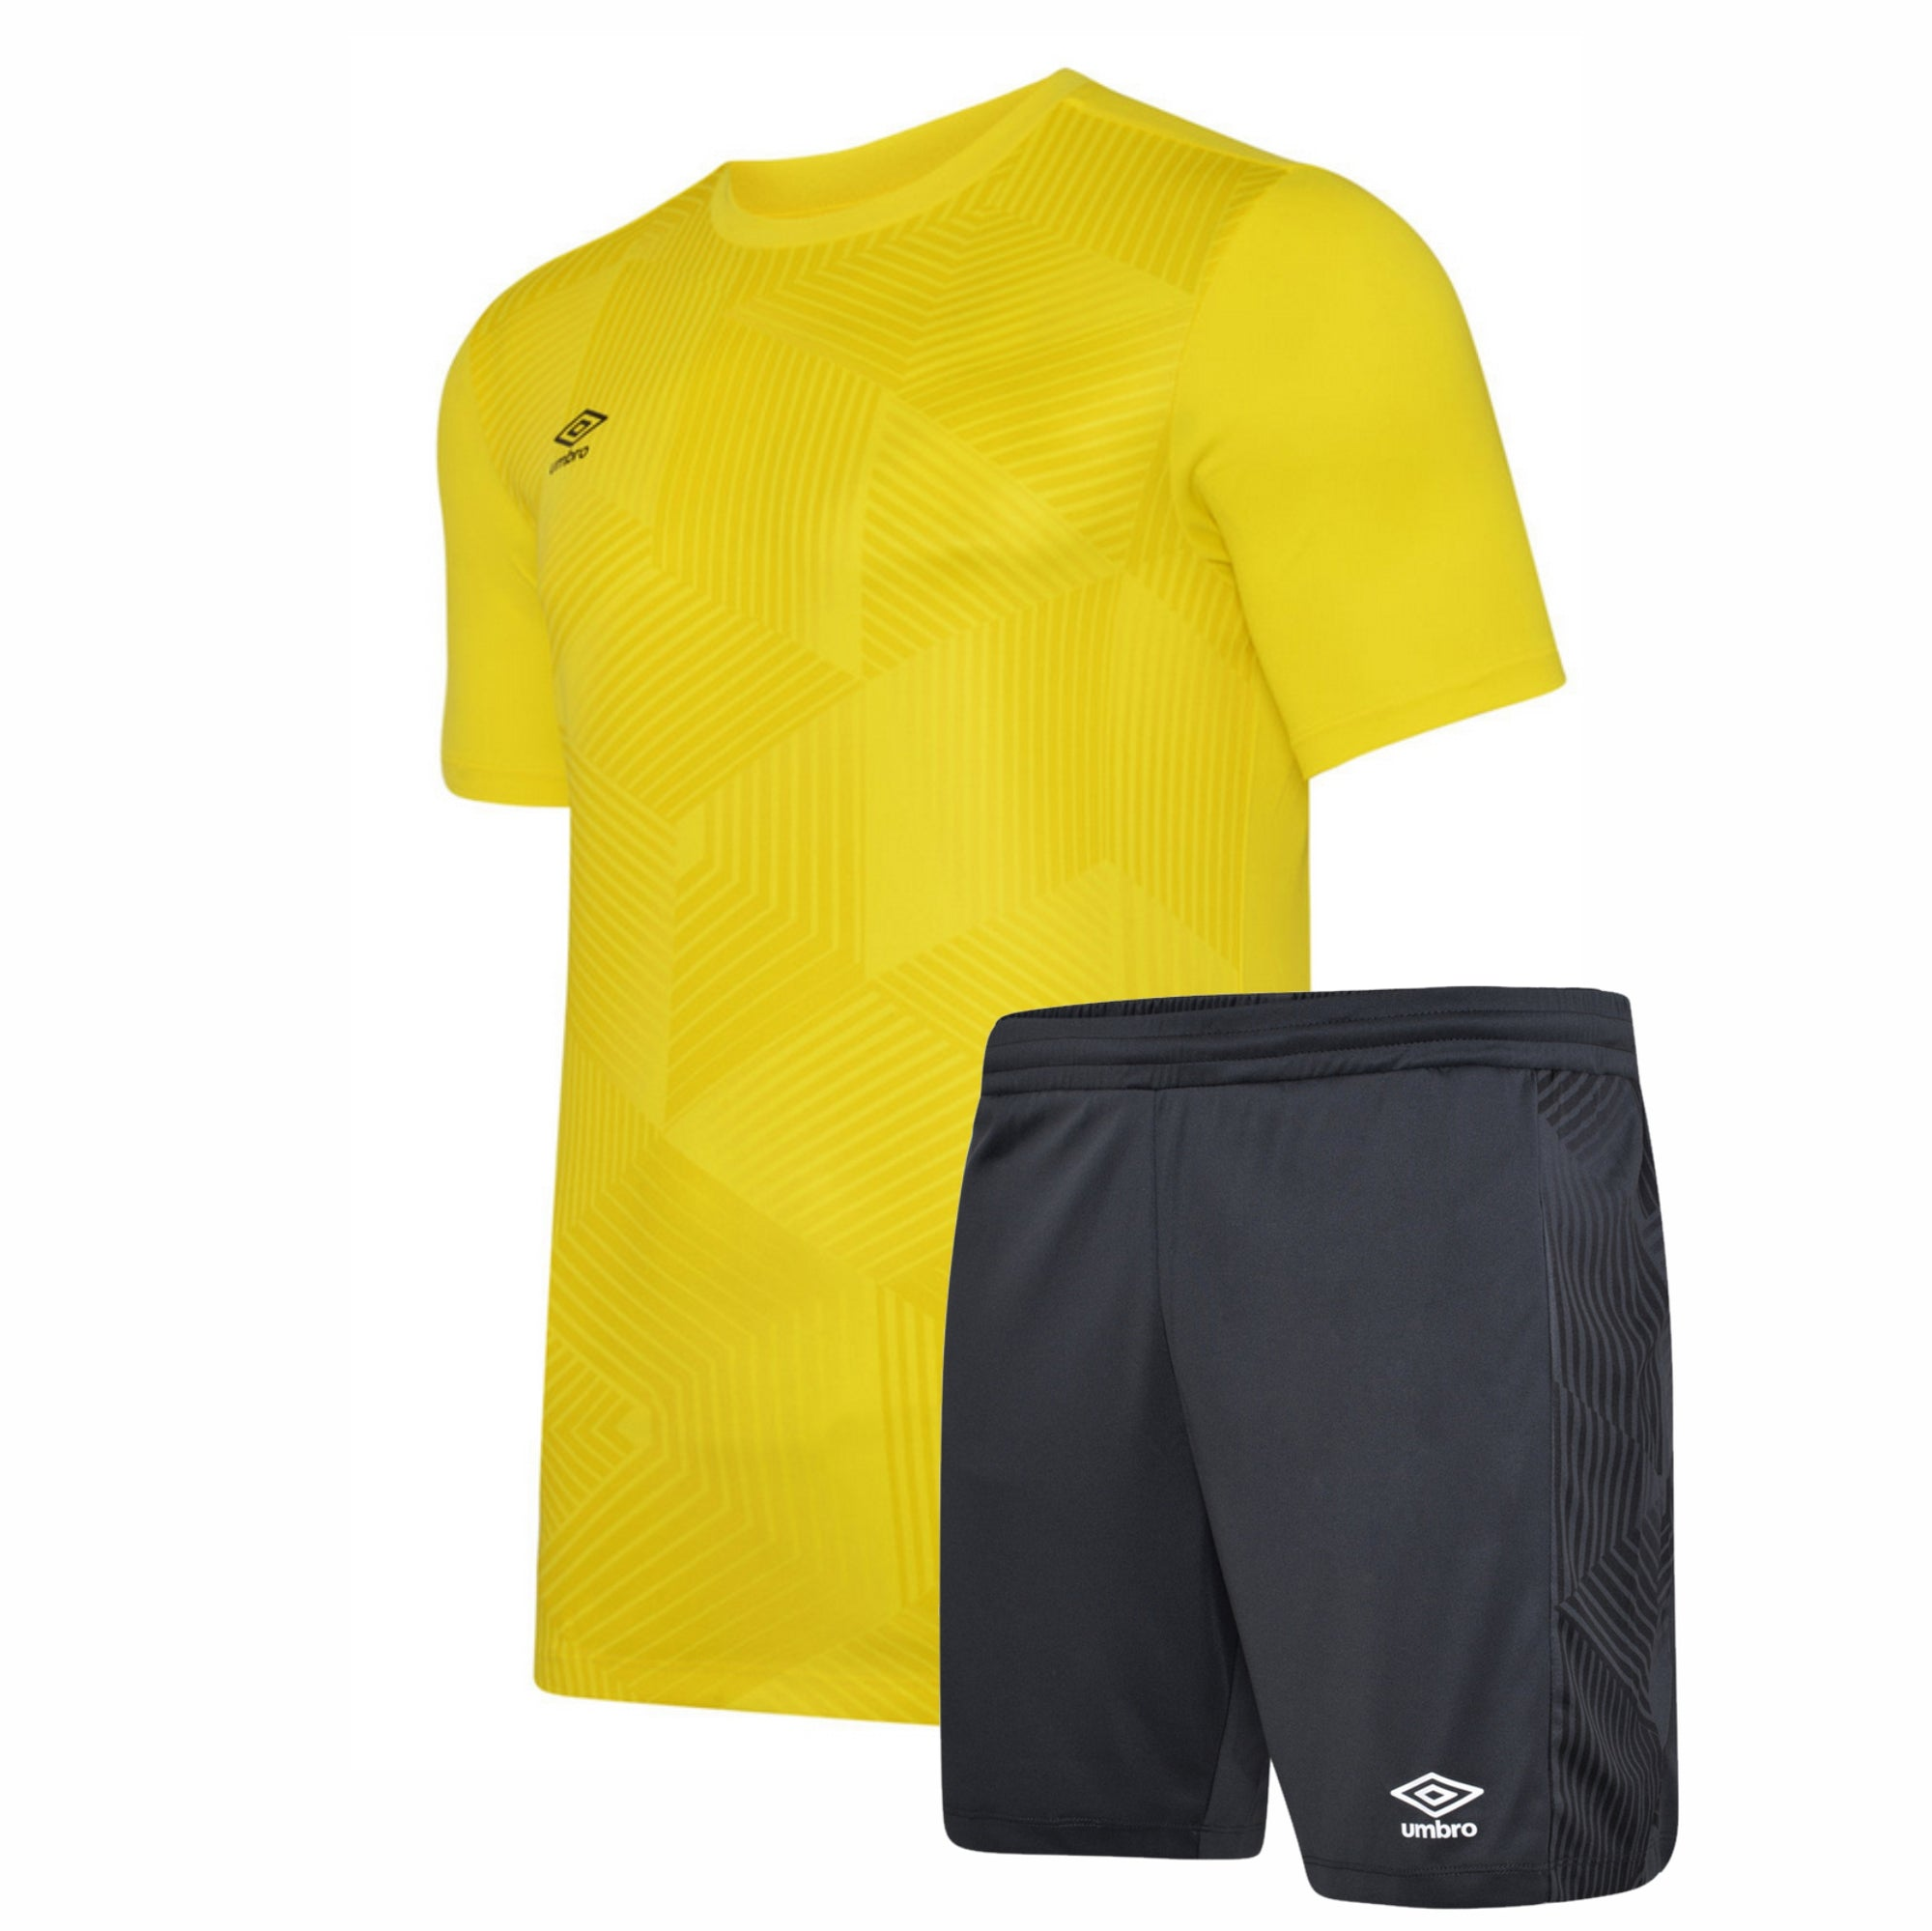 Umbro Maxium Kit Set - Blazing Yellow/Black